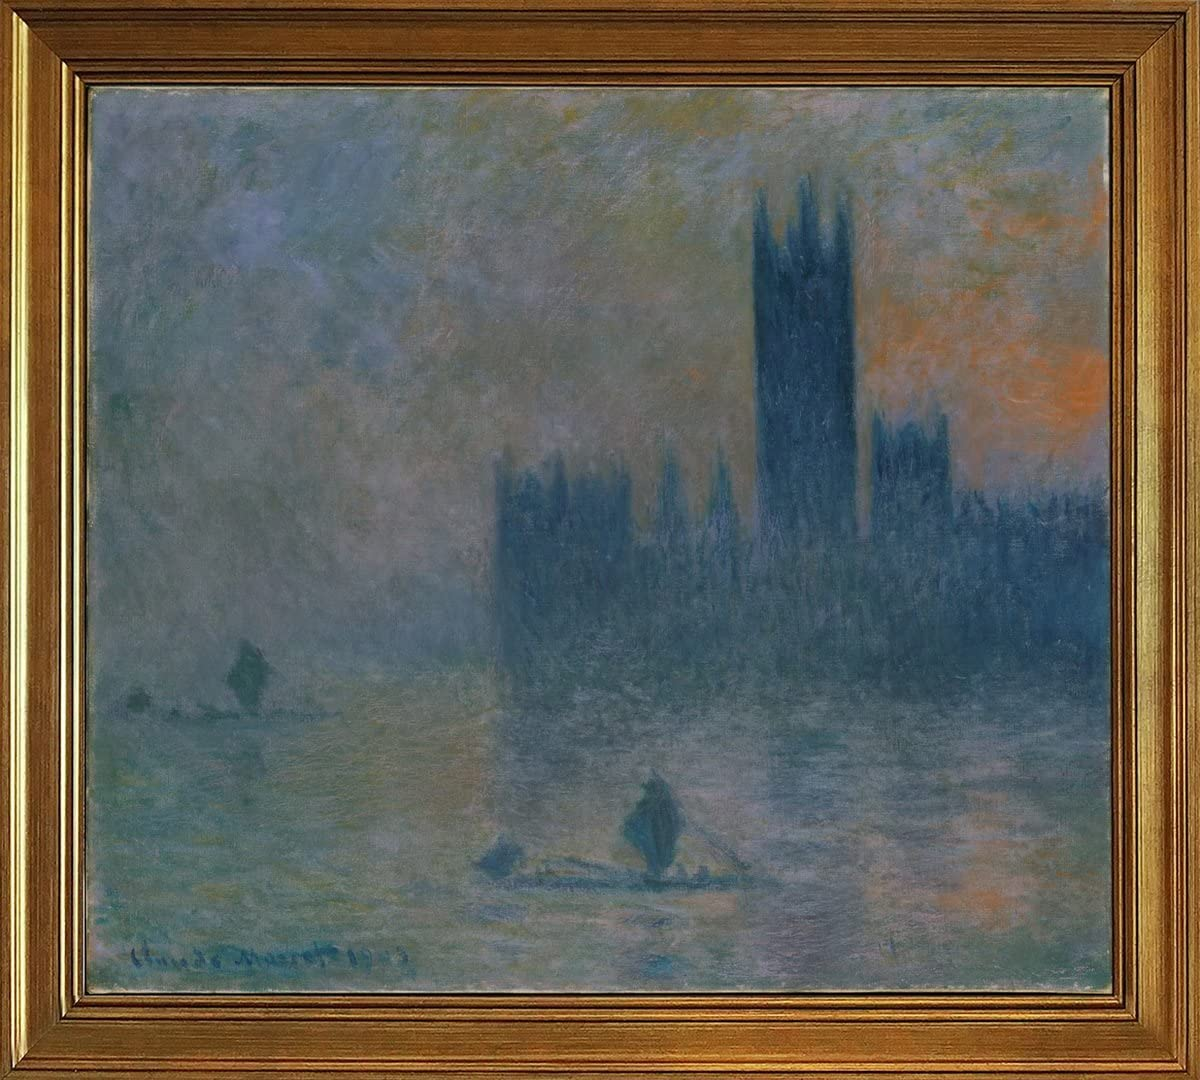 Amazon Com Berkin Arts Classic Framed Claude Monet Giclee Canvas Print Paintings Poster Reproduction Houses Of Parliament Effect Of Fog Posters Prints